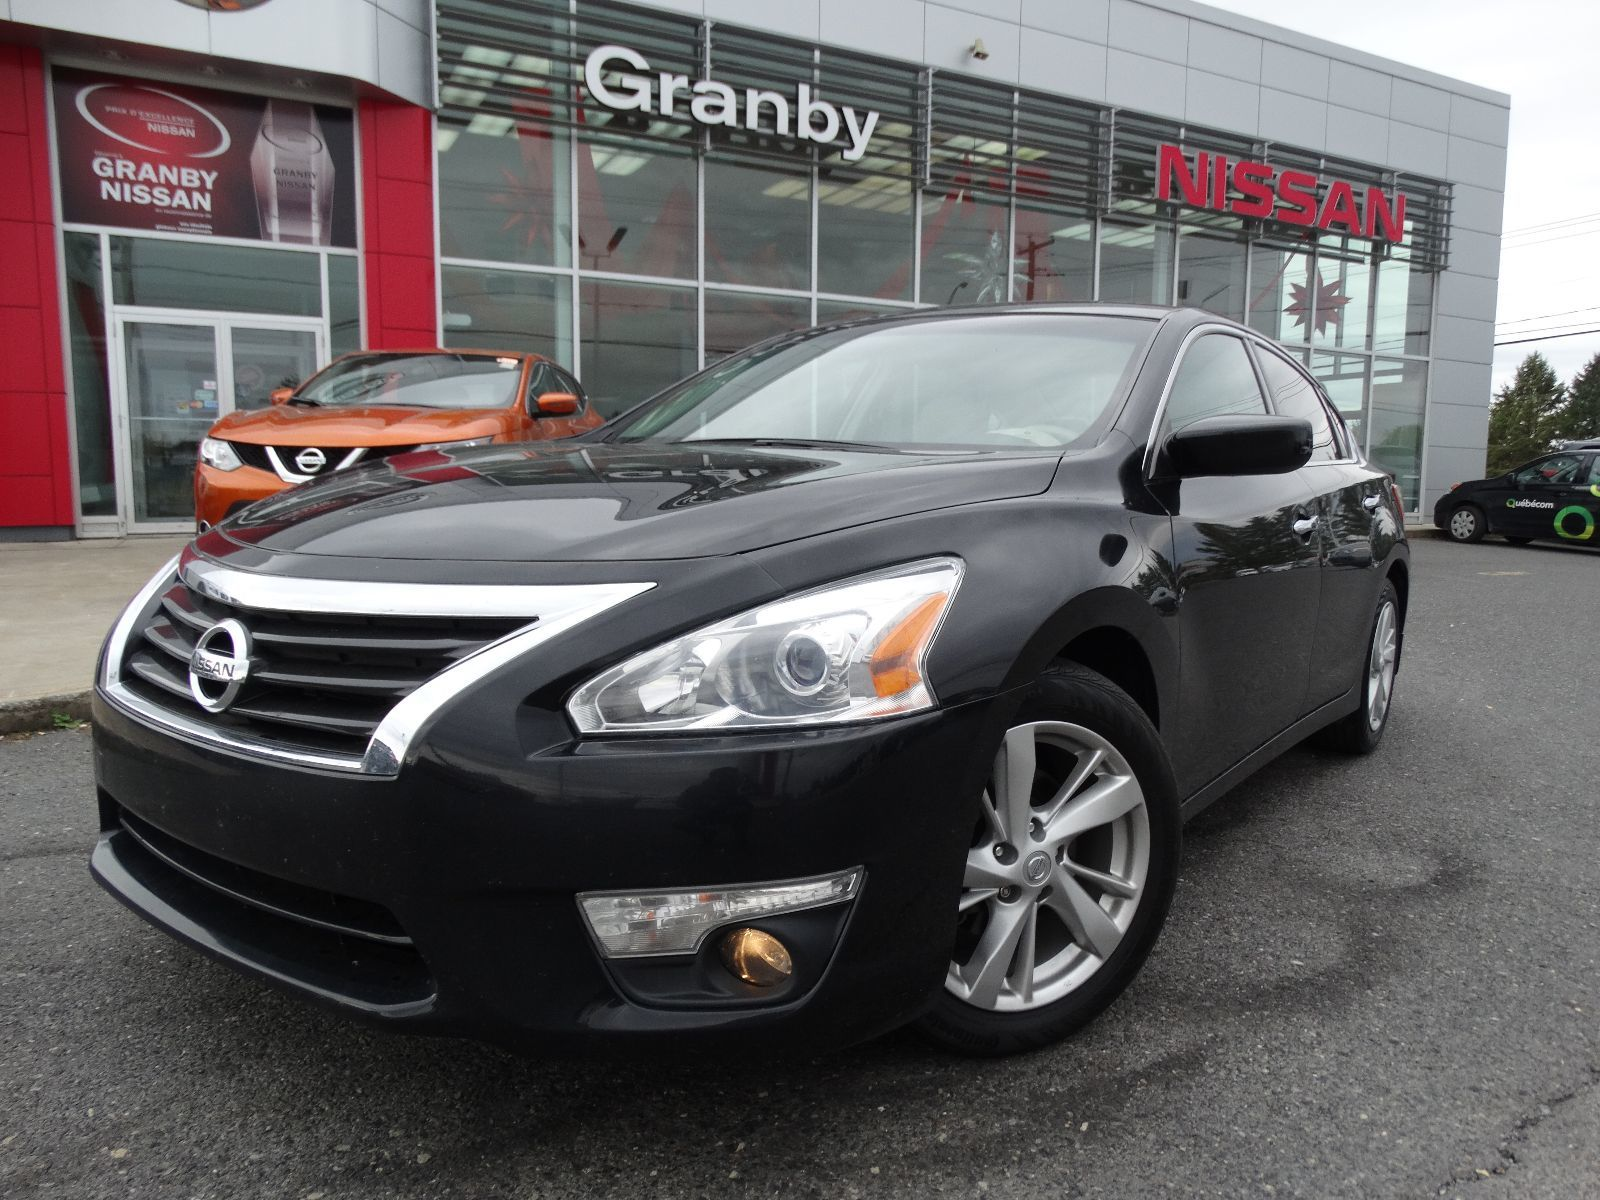 in used for sale irving great usautomobile sv condition tx altima nissan